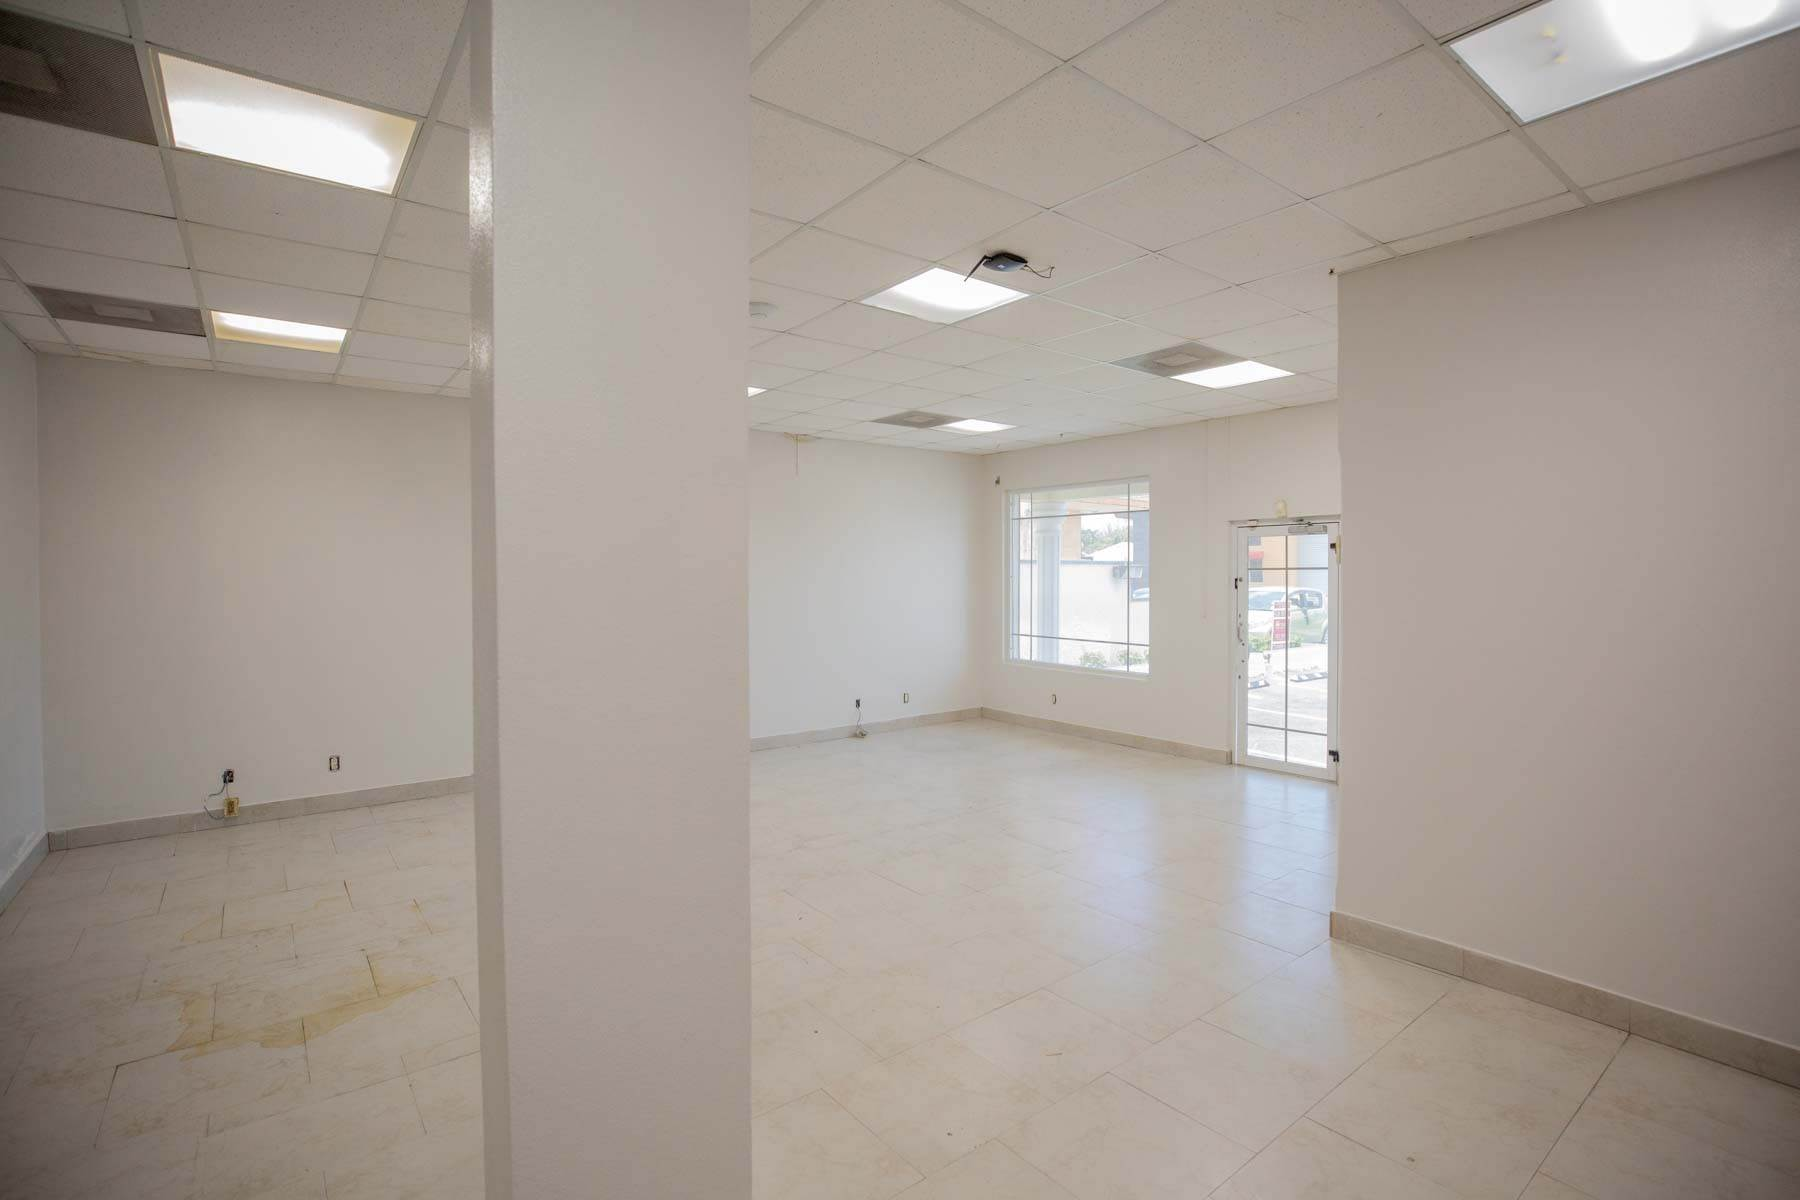 14. Commercial for Rent at Unique Discovery Plaza Upper Floor Office Space - MLS 33337 Nassau And Paradise Island, Bahamas